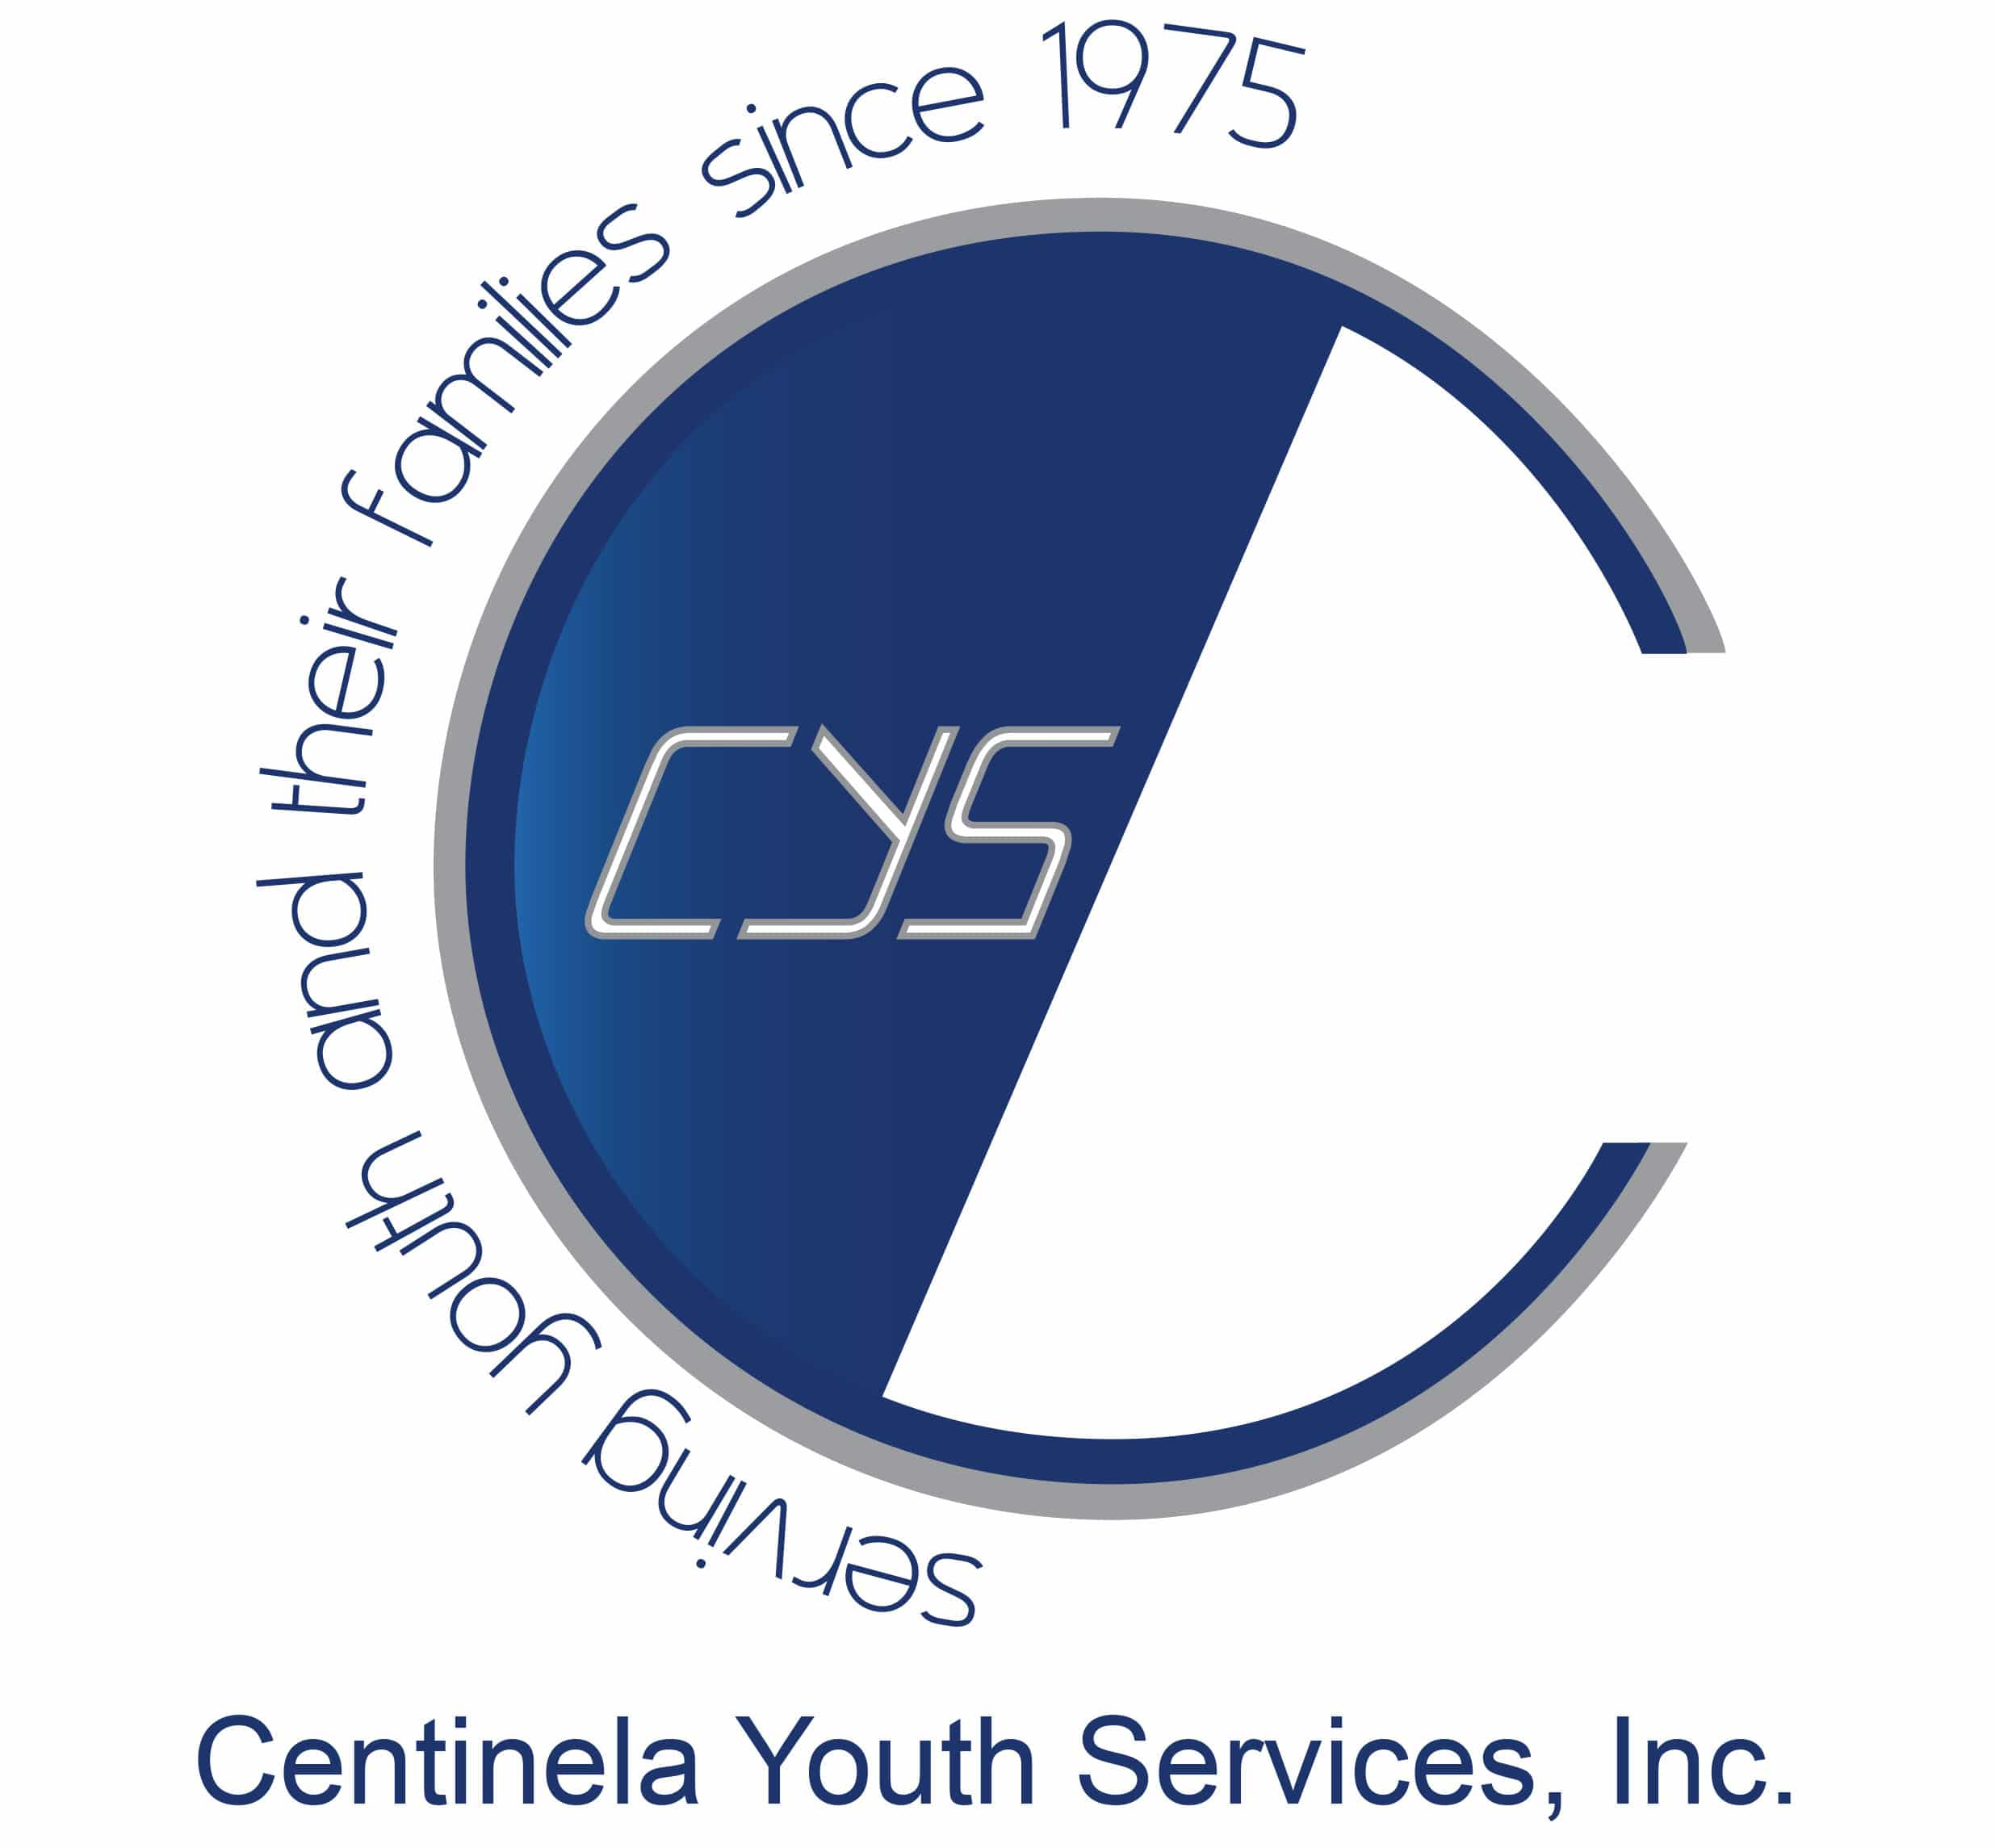 Centinela Youth Services